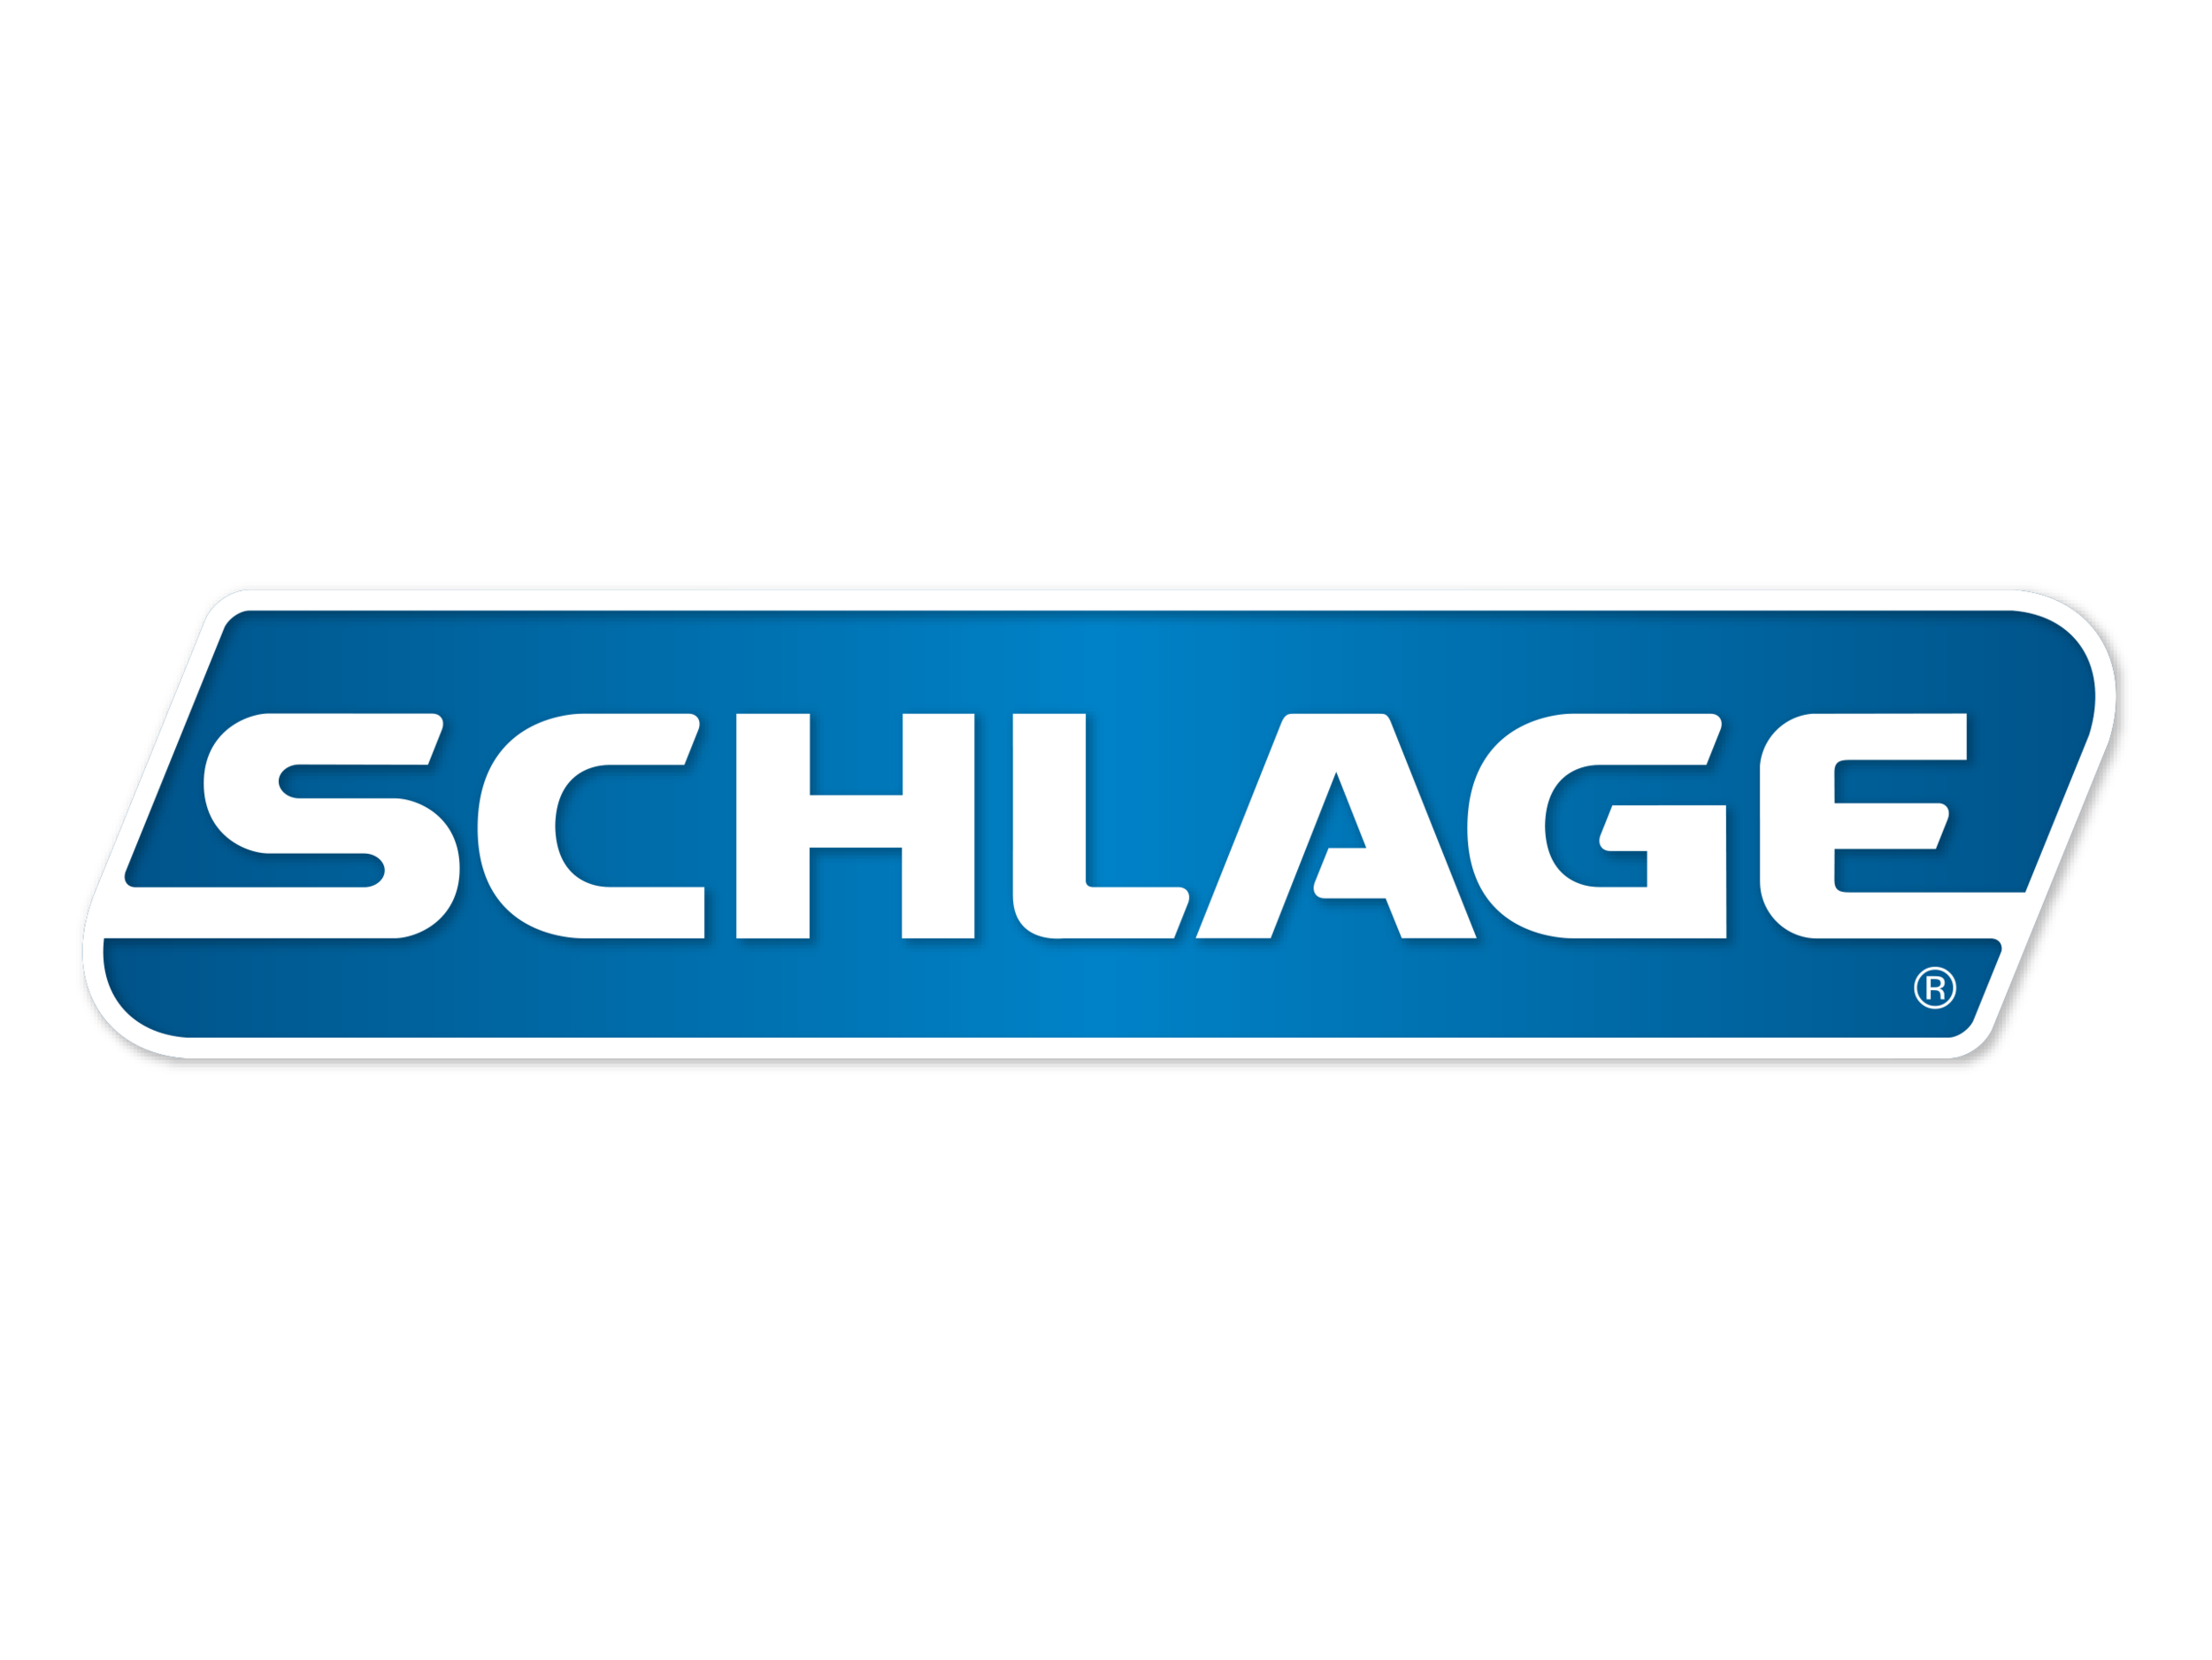 Schlage 2017.png